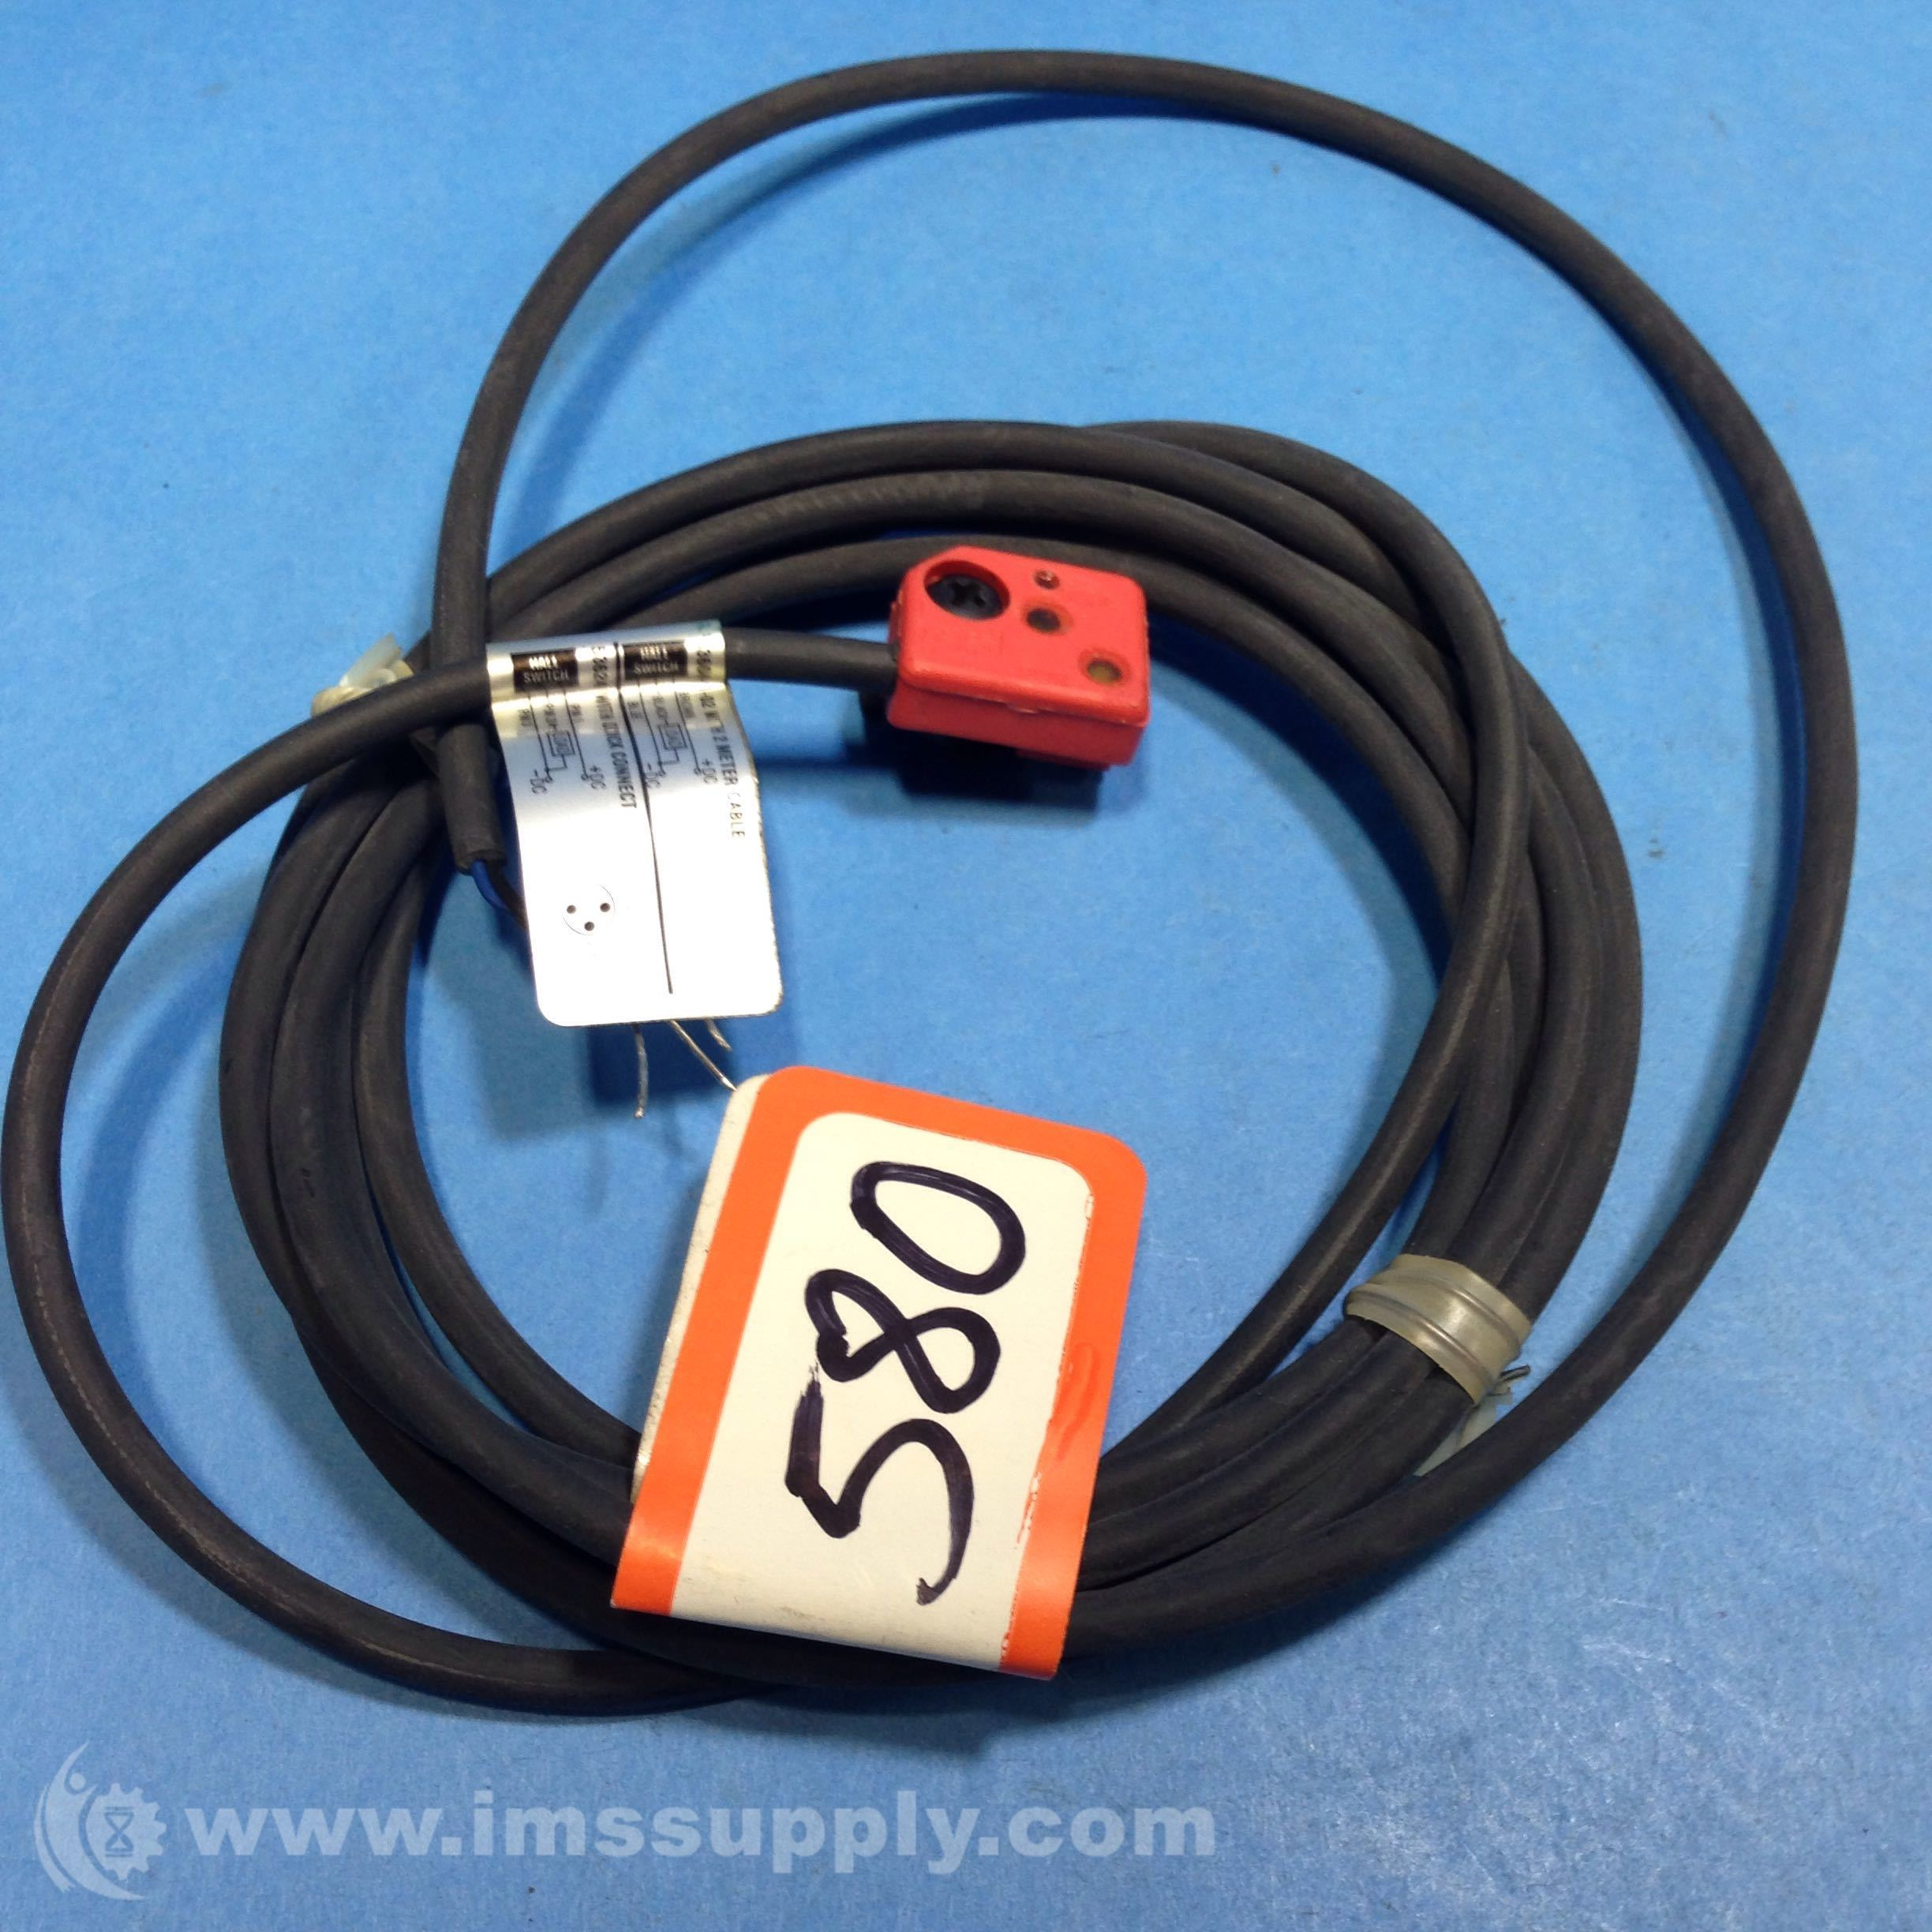 Phd Inc 53604-1-02 Proximity Switch Hall PNP DC 2M Cable - IMS Supply